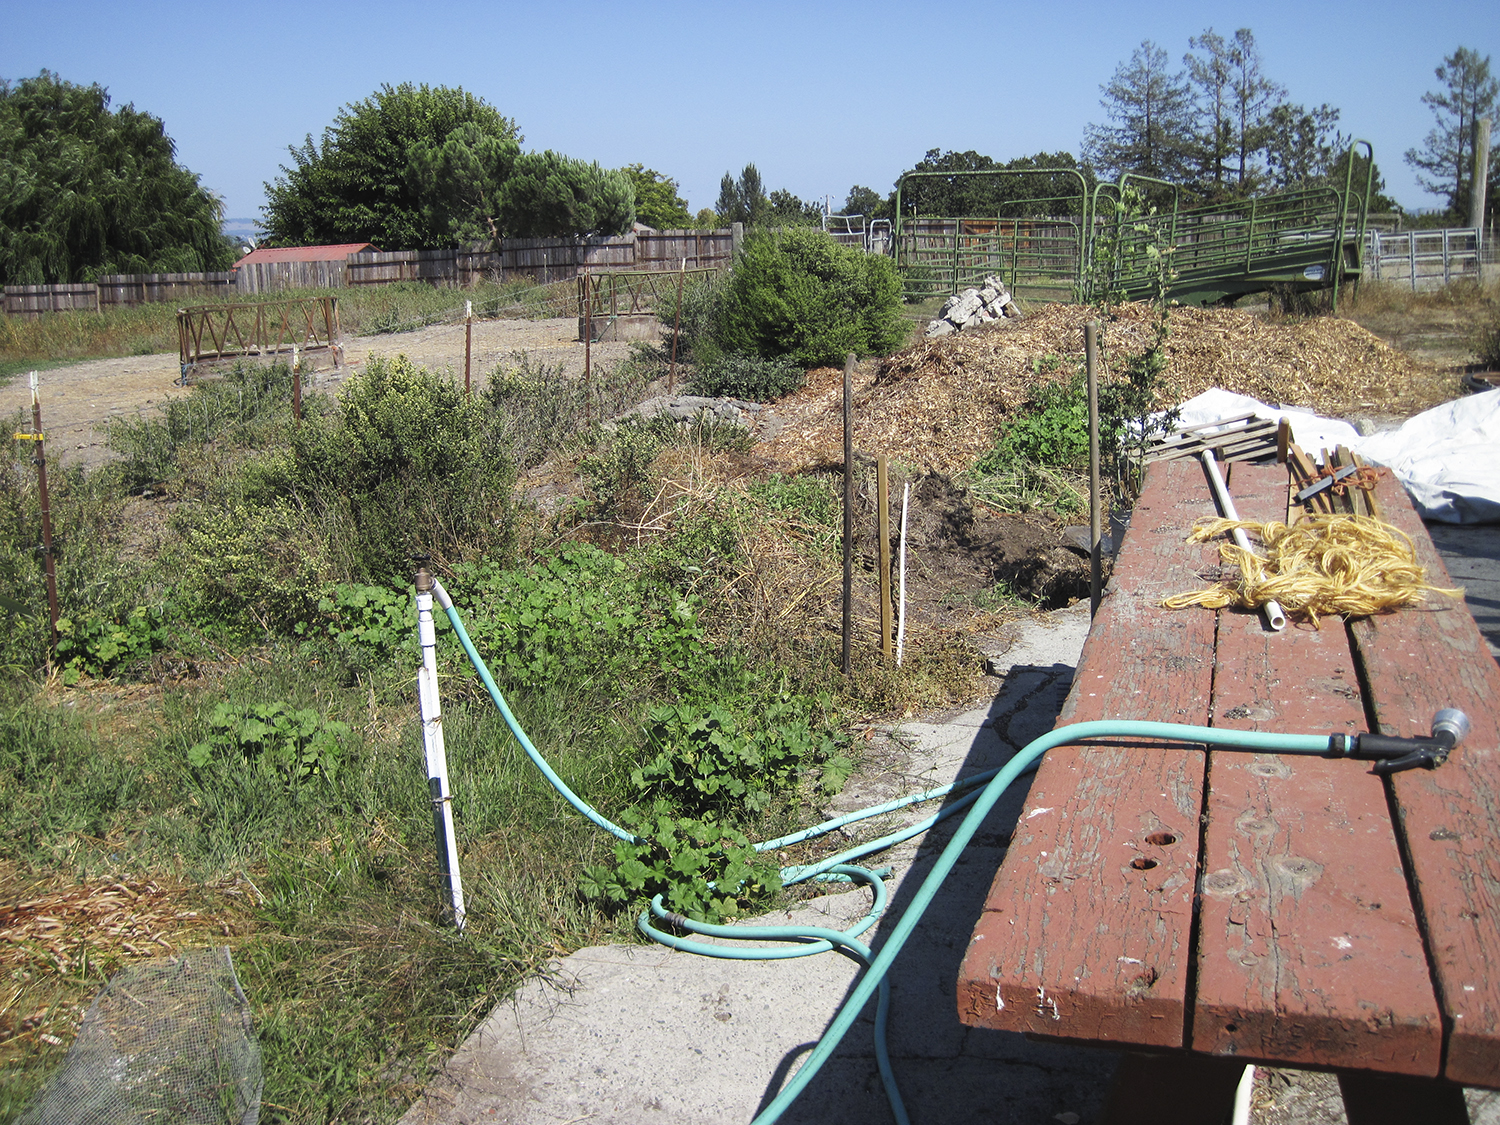 The BEFORE -- area behind the Laguna Foundation's native plant nursery before installation of Compost Cricket Corral, which will consolidate the compost pile and provide wildlife habitat.